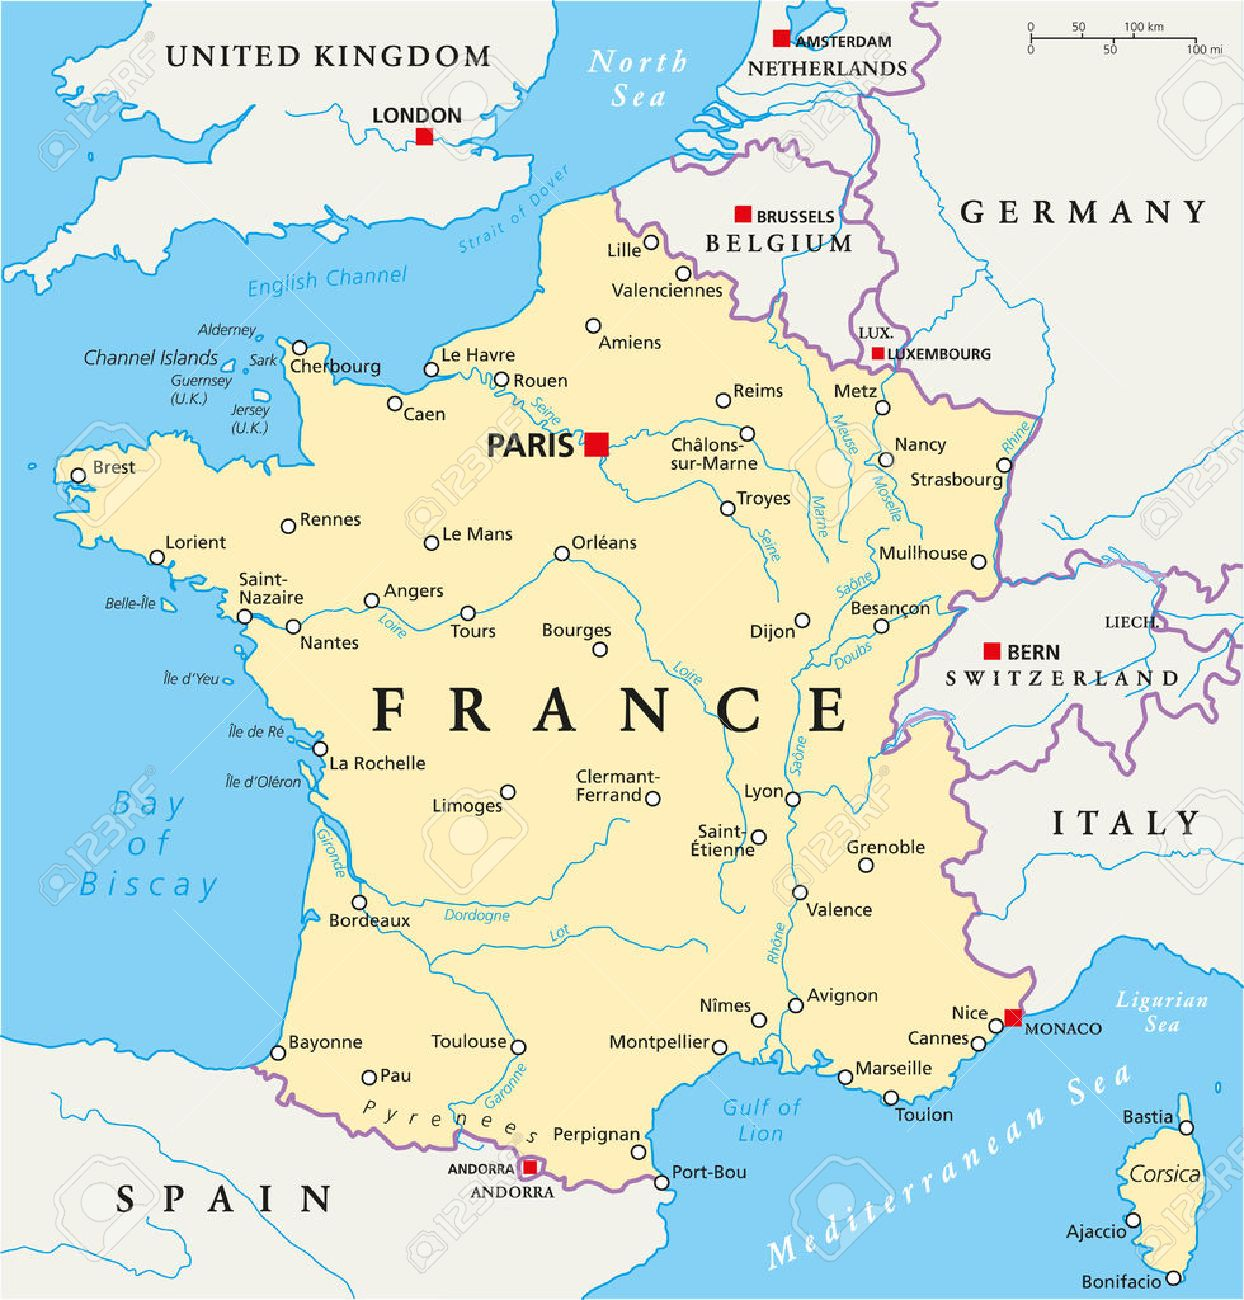 France Political Map With Capital Paris National Borders Most